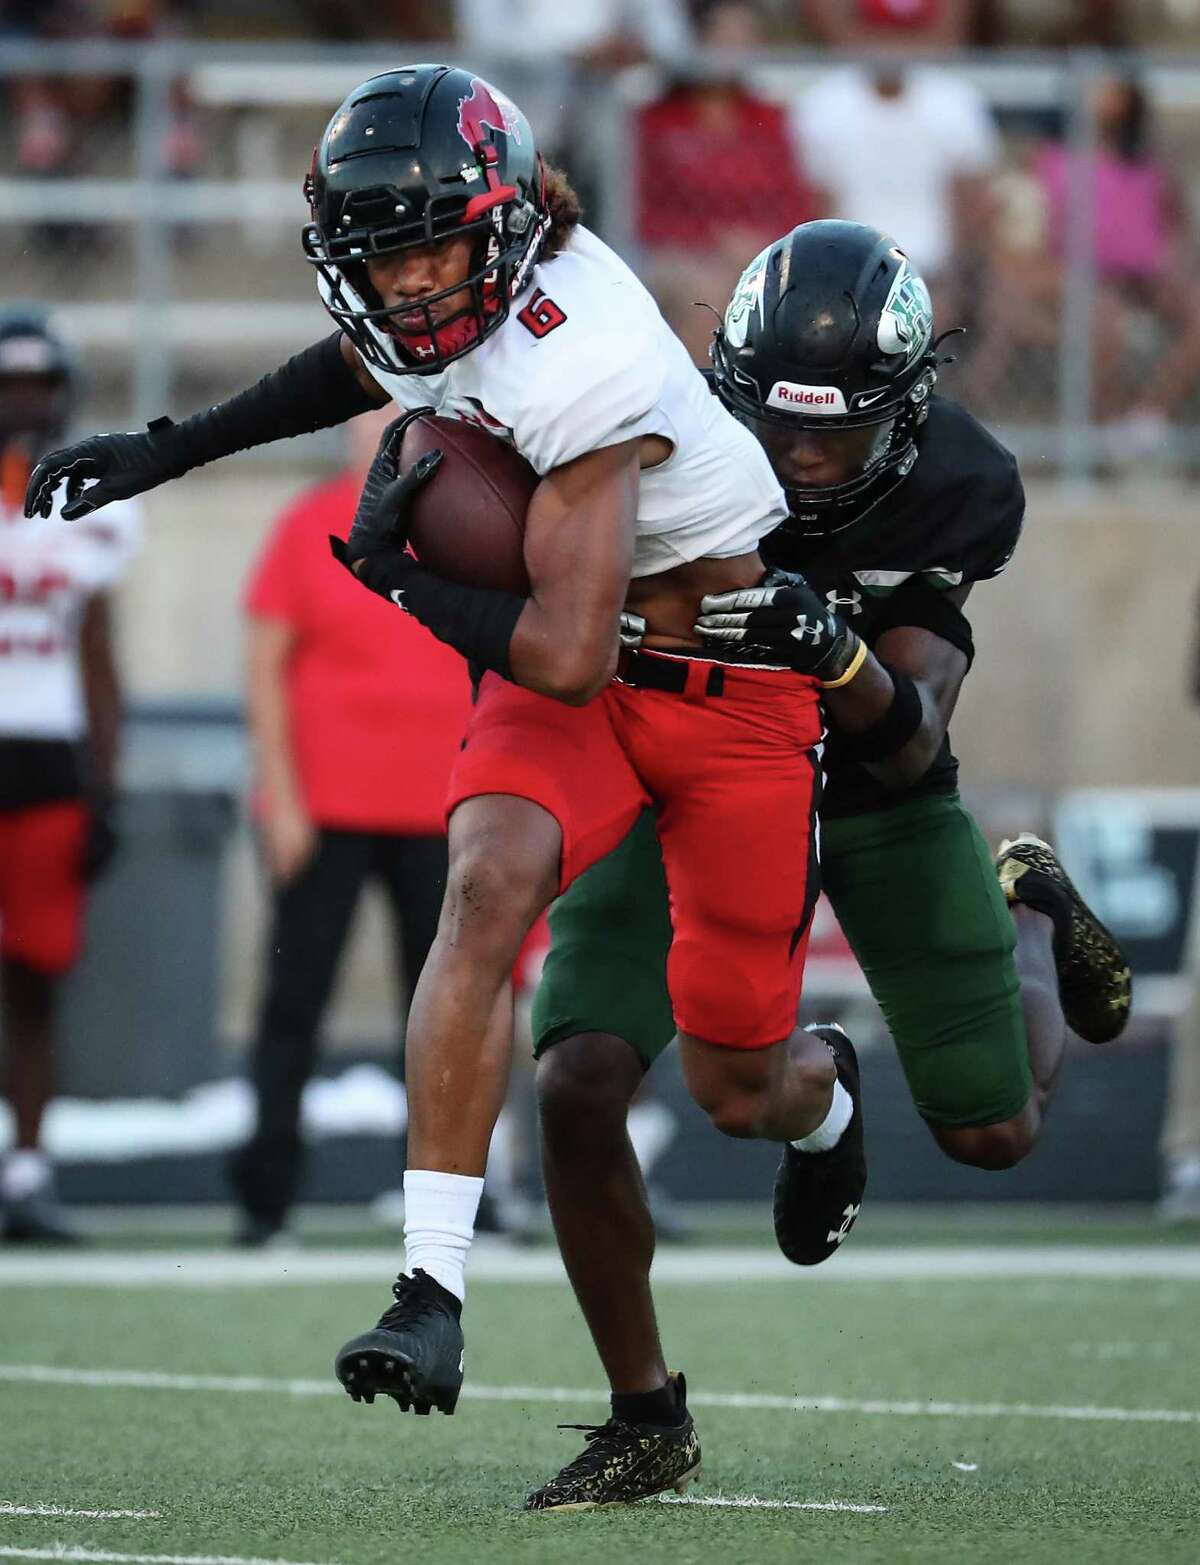 Westfield wide receiver Chuuky Hines (6) makes a first down reception against Hightower defensive back Santana Wilson during the first half of a non-district high school football game at Hall Stadium Friday, Sept. 3, 2021 in Missouri City.